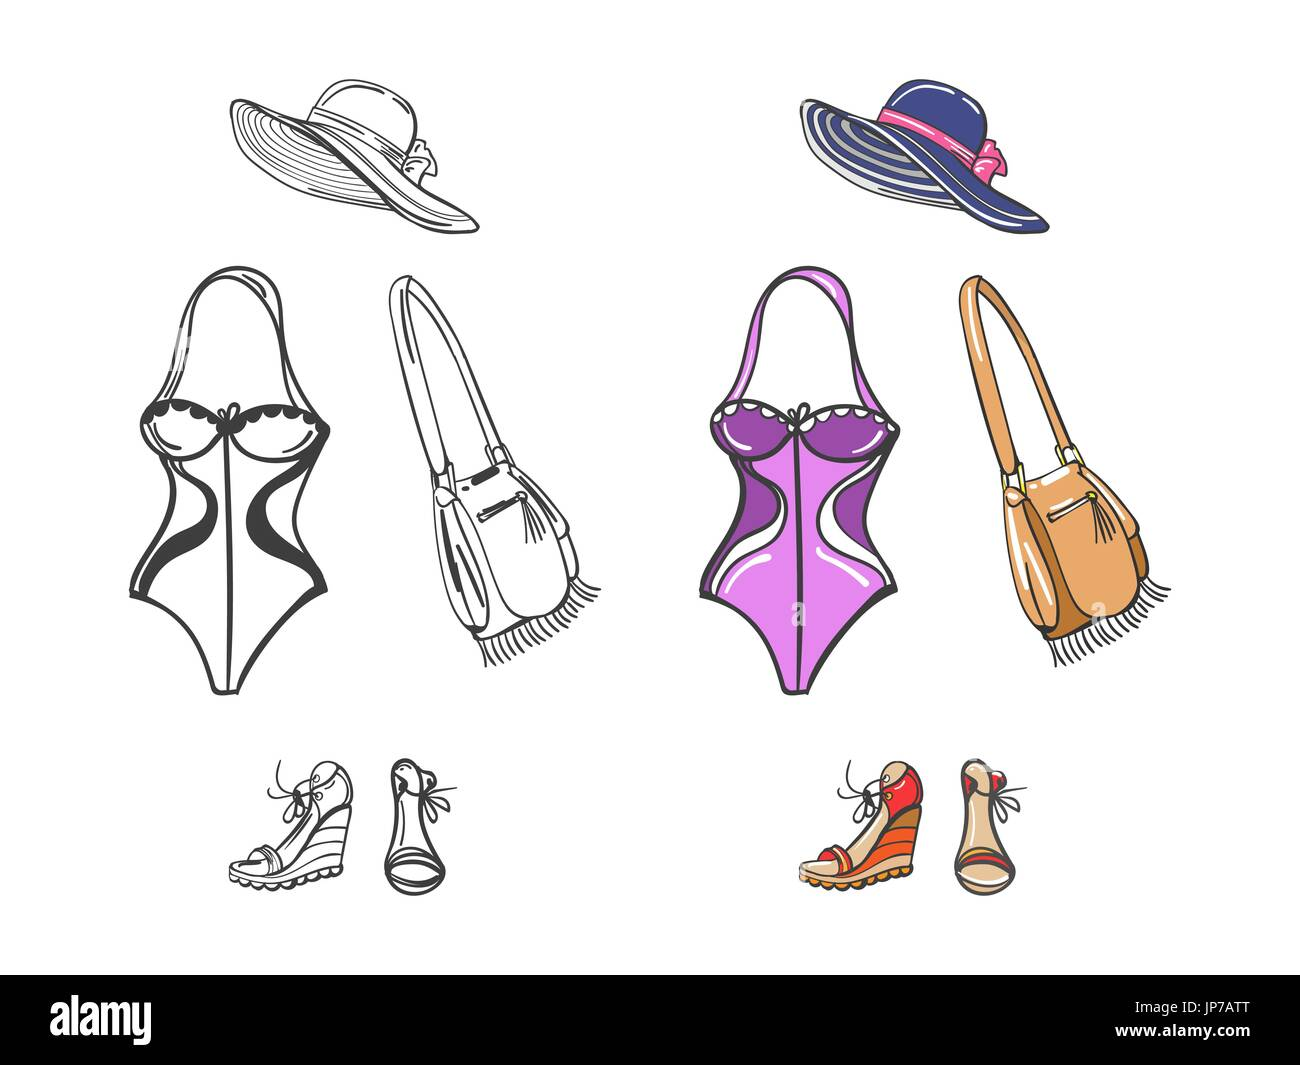 Fashion beach look for girl. Swimwear, shoes, hat and bag colorful and silhouettes. Vector illustration - Stock Vector